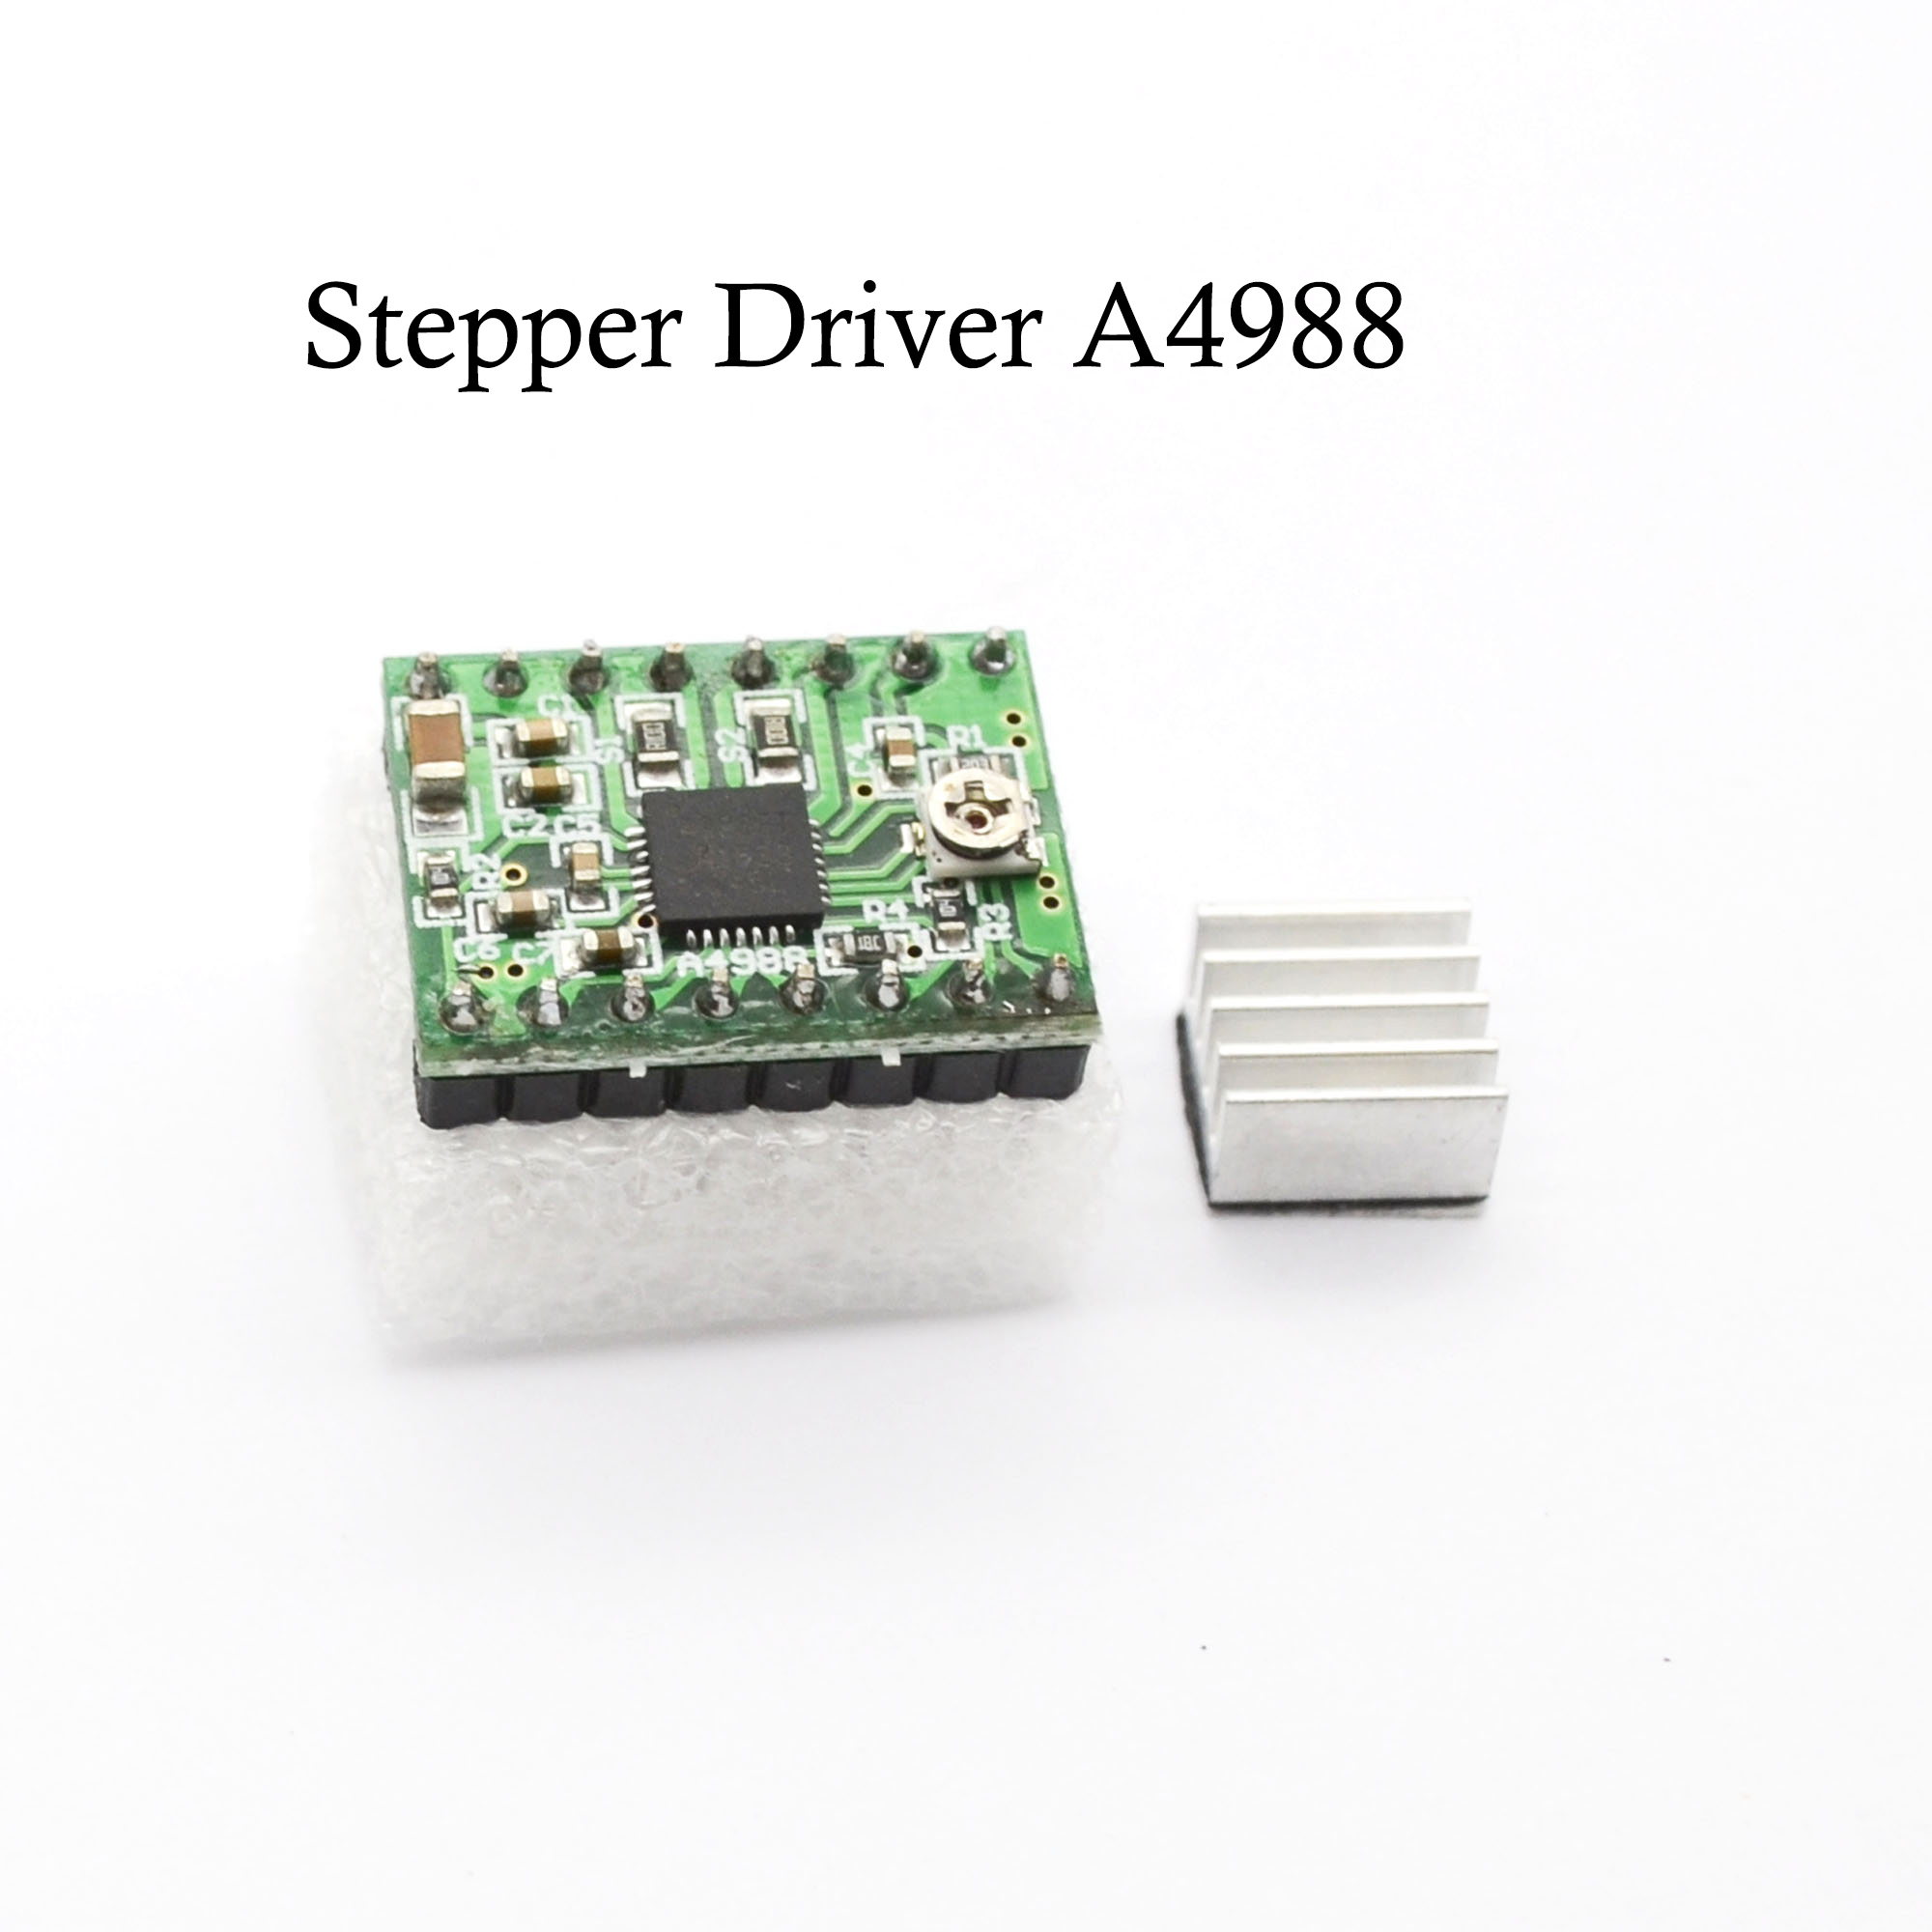 3D printer parts StepStick a4988 for Reprap Ramps 1.4 Step motor driver HR-A4988 drive board motherboard with Heatsink